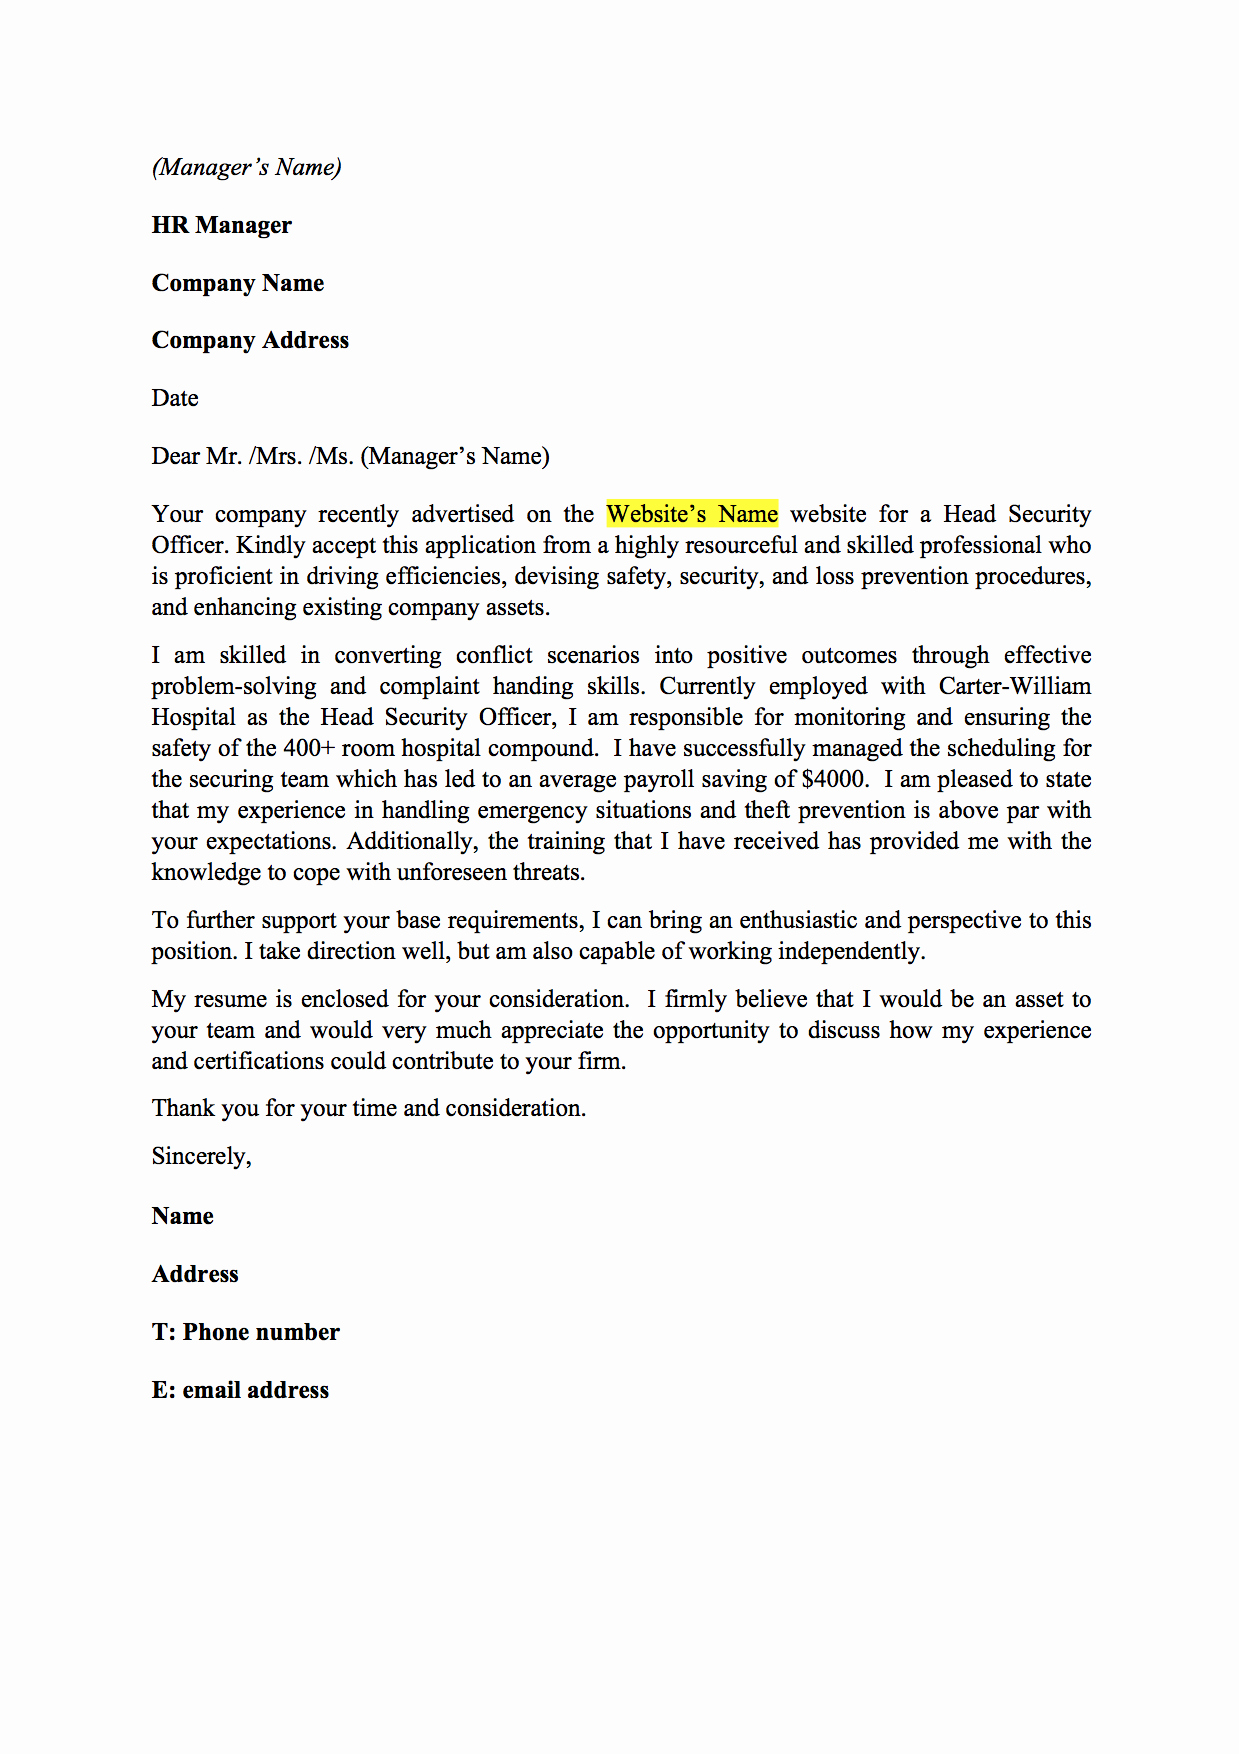 Temple University Essay Examples New Cover Letter Samples Broadcasting Internship Temple